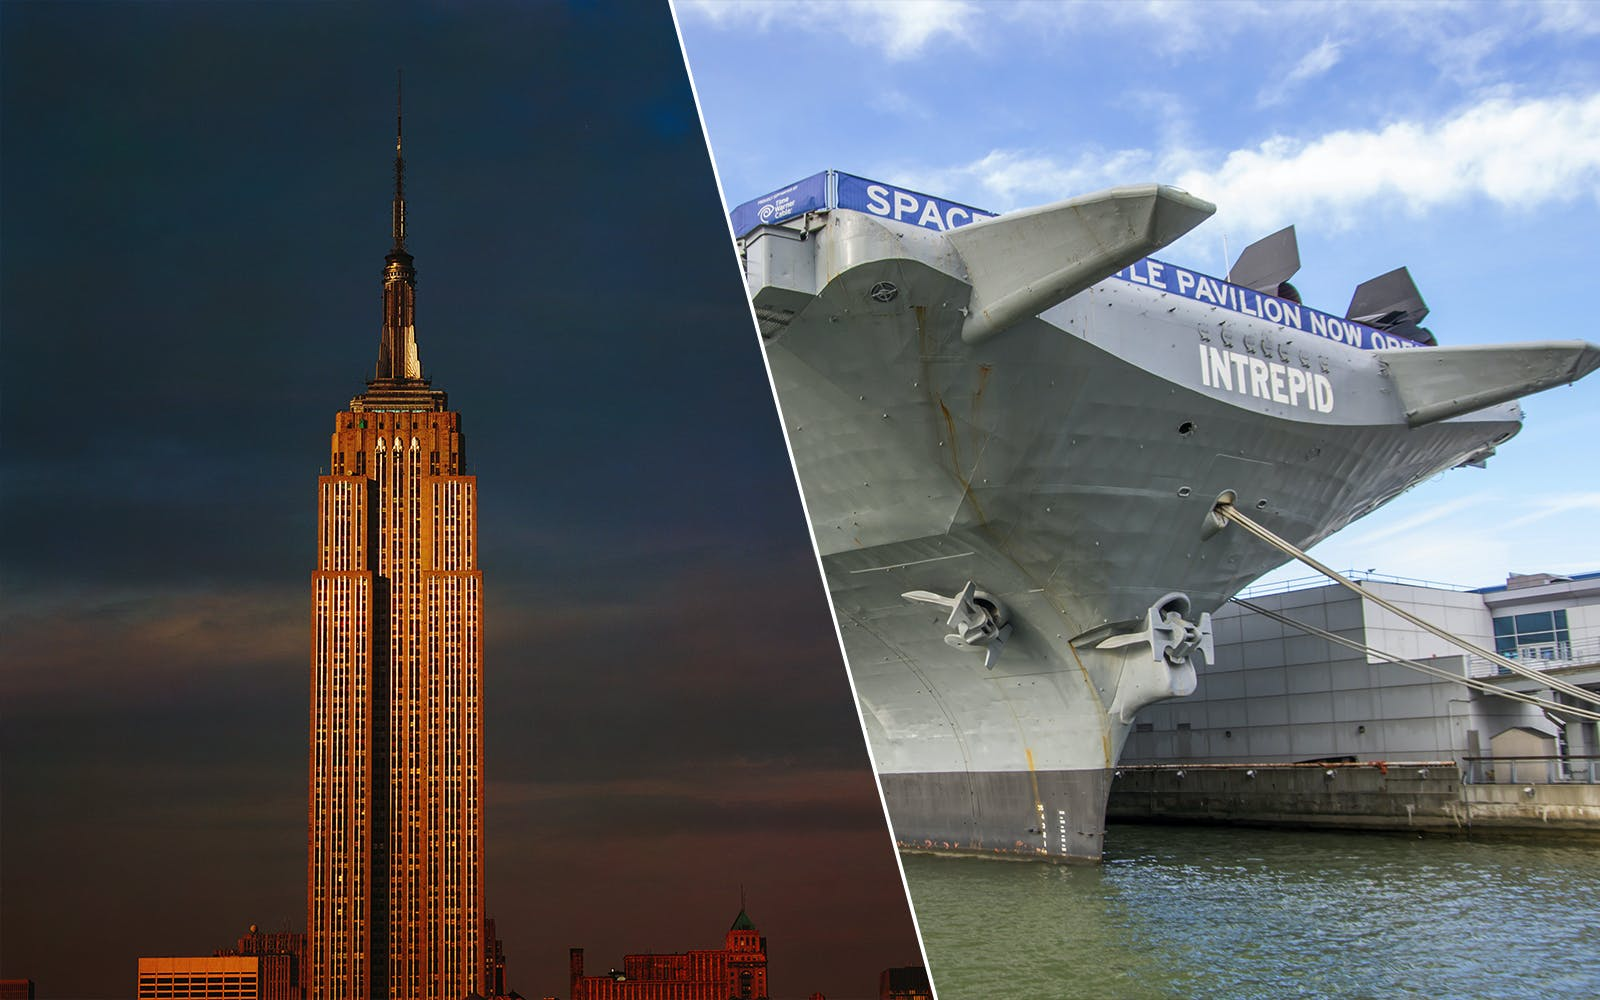 Skip the Line Access to Intrepid Museum and Empire State Building